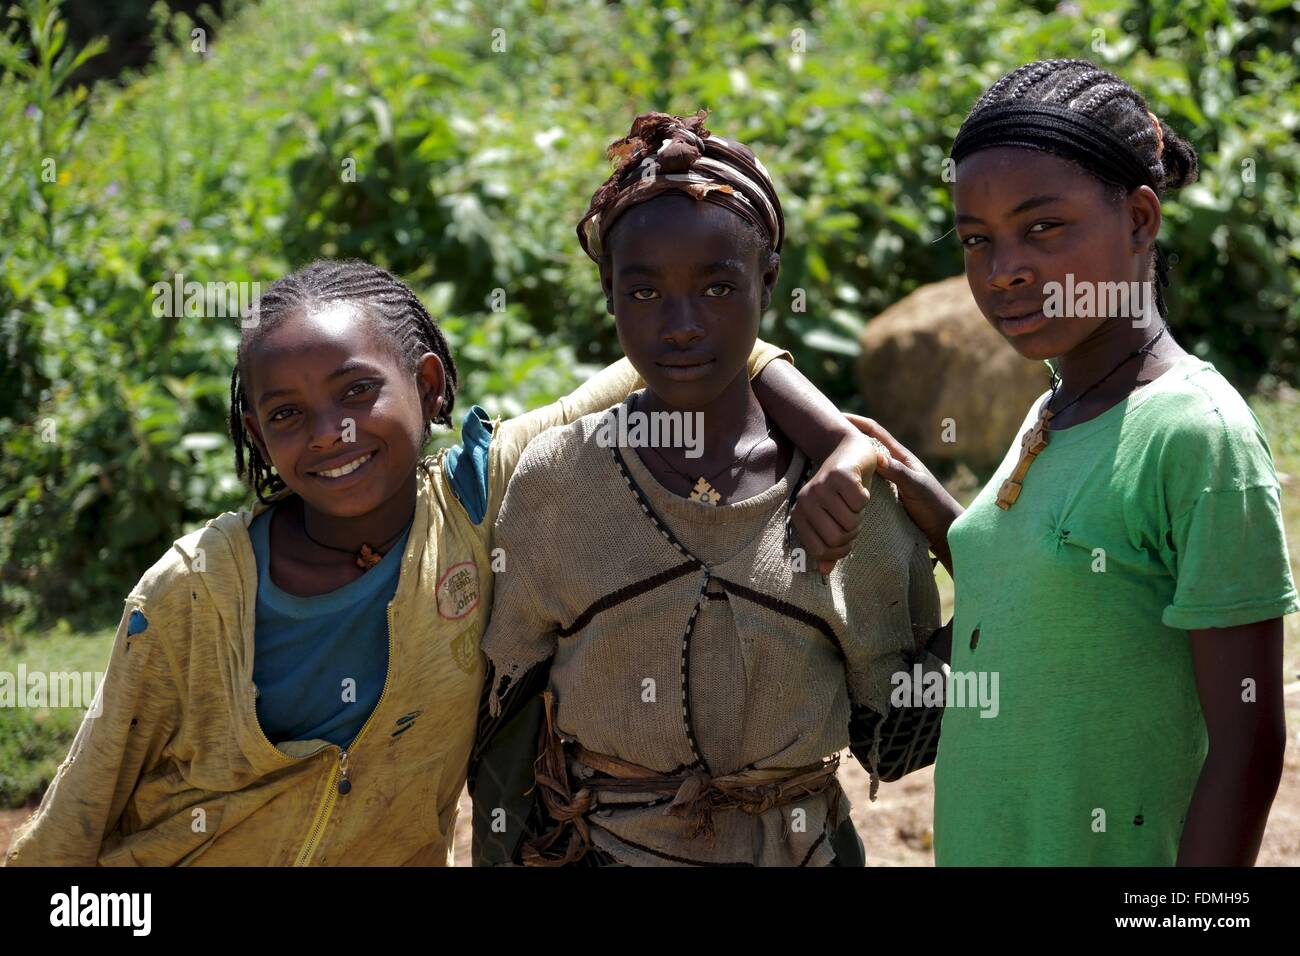 Three girls pose for a photograph on the side of a road through the mountains near Arba Minch in Ethiopia Stock Photo